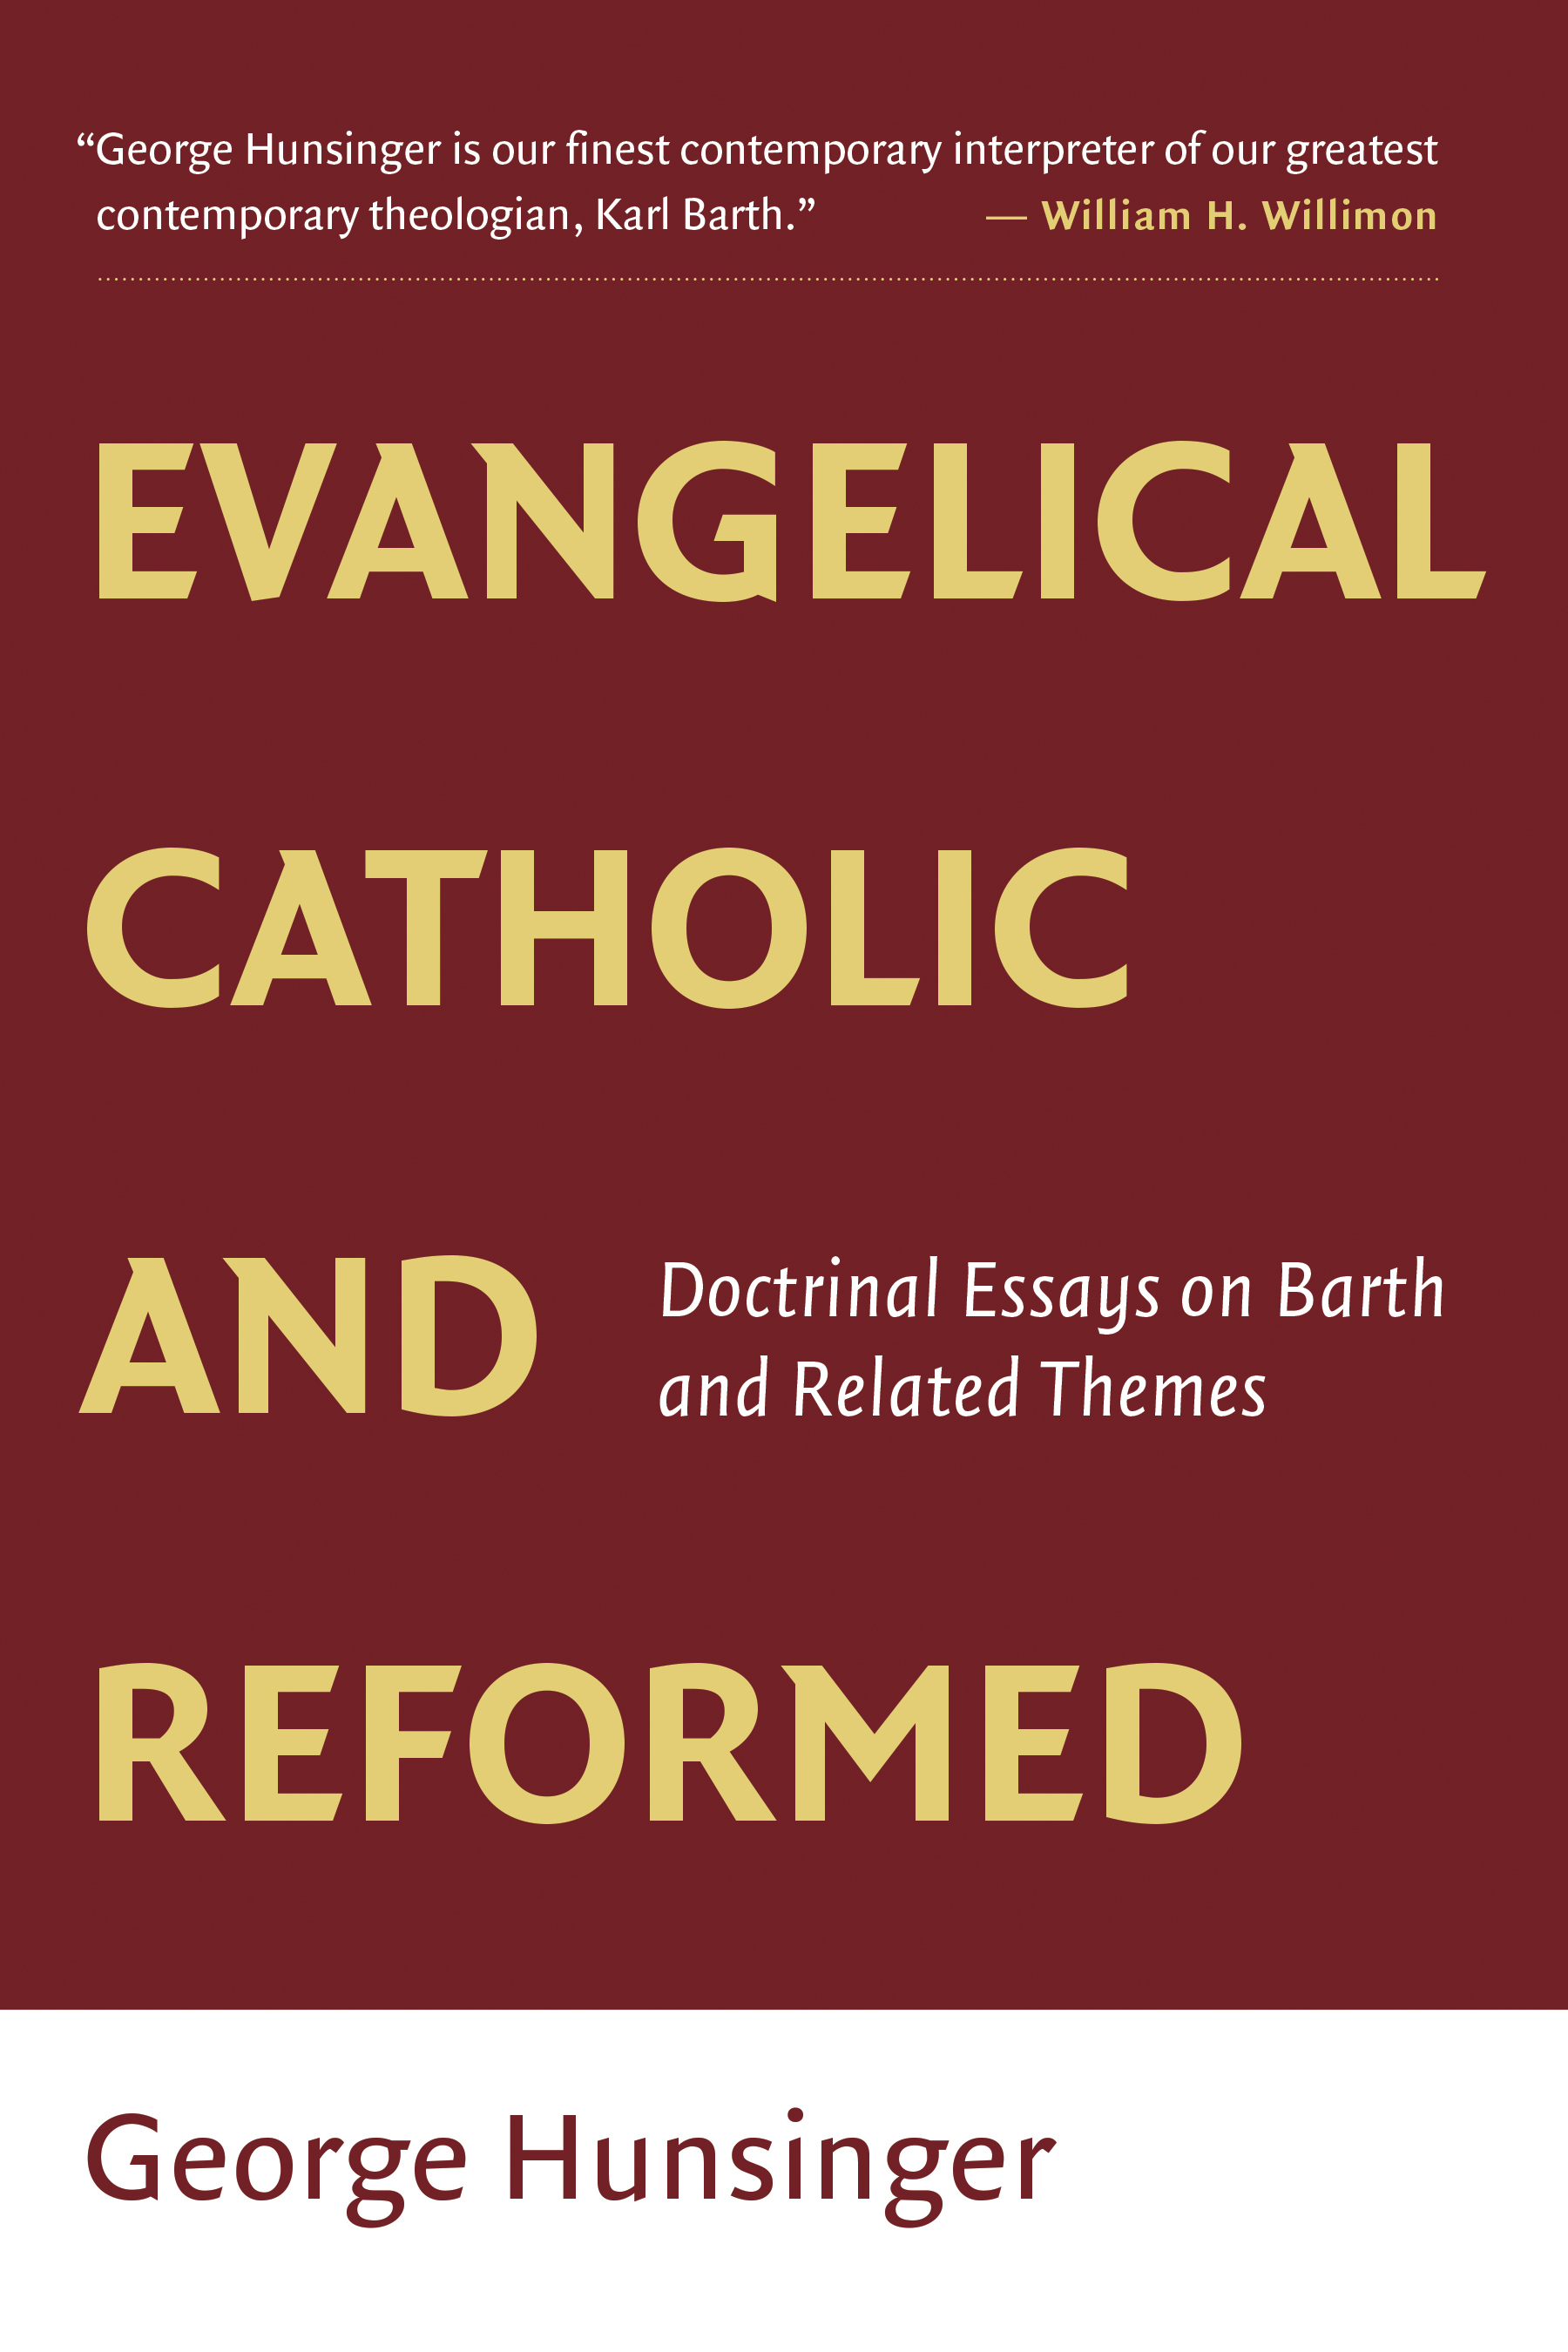 Catholic Quotes On Love Evangelical Catholic And Reformed  George Hunsinger  Eerdmans